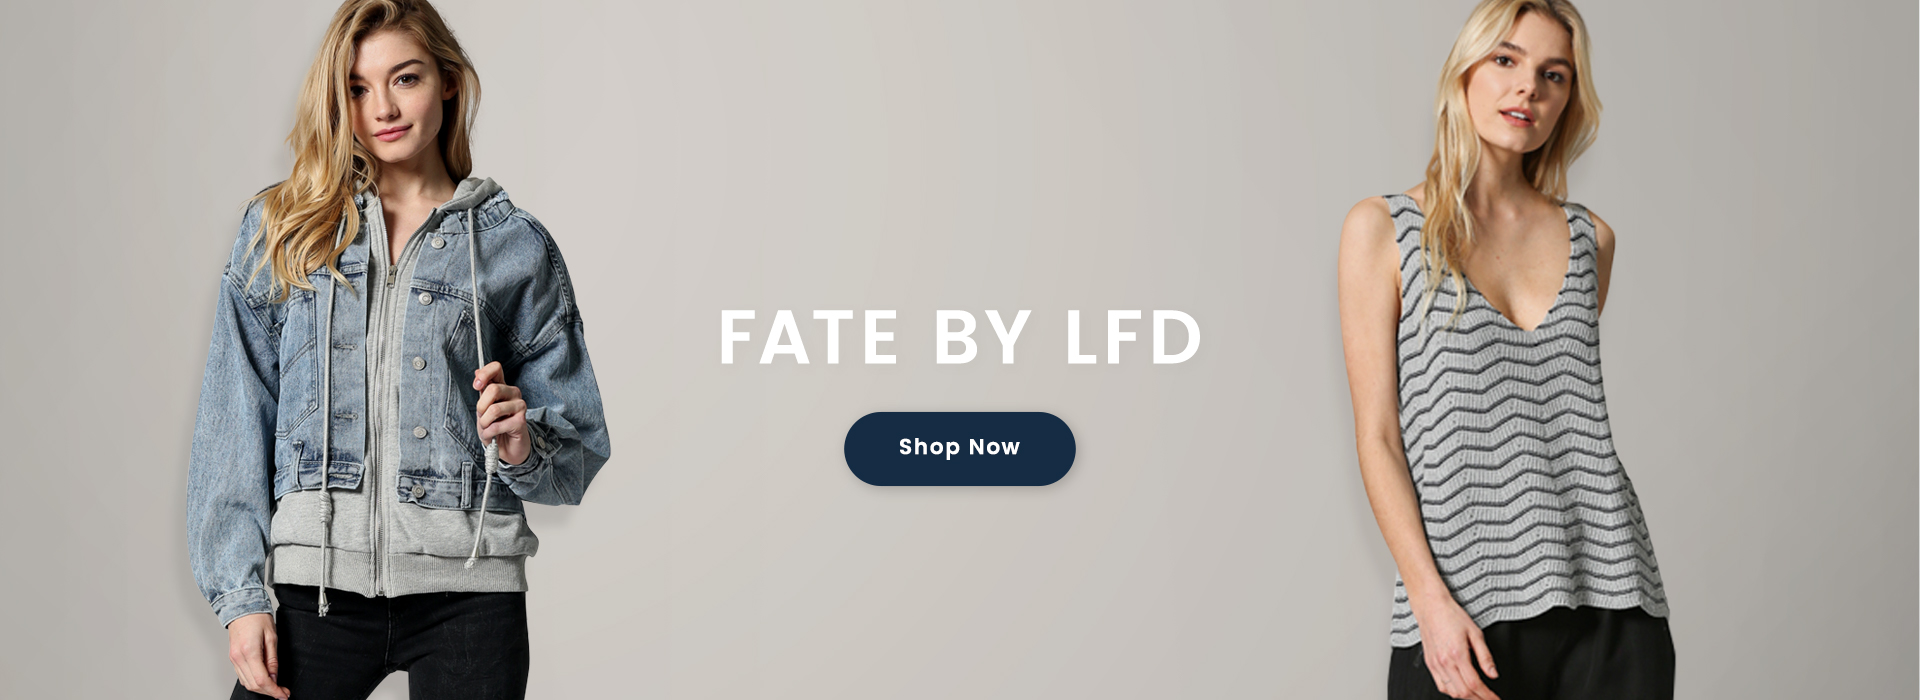 FATE BY LFD